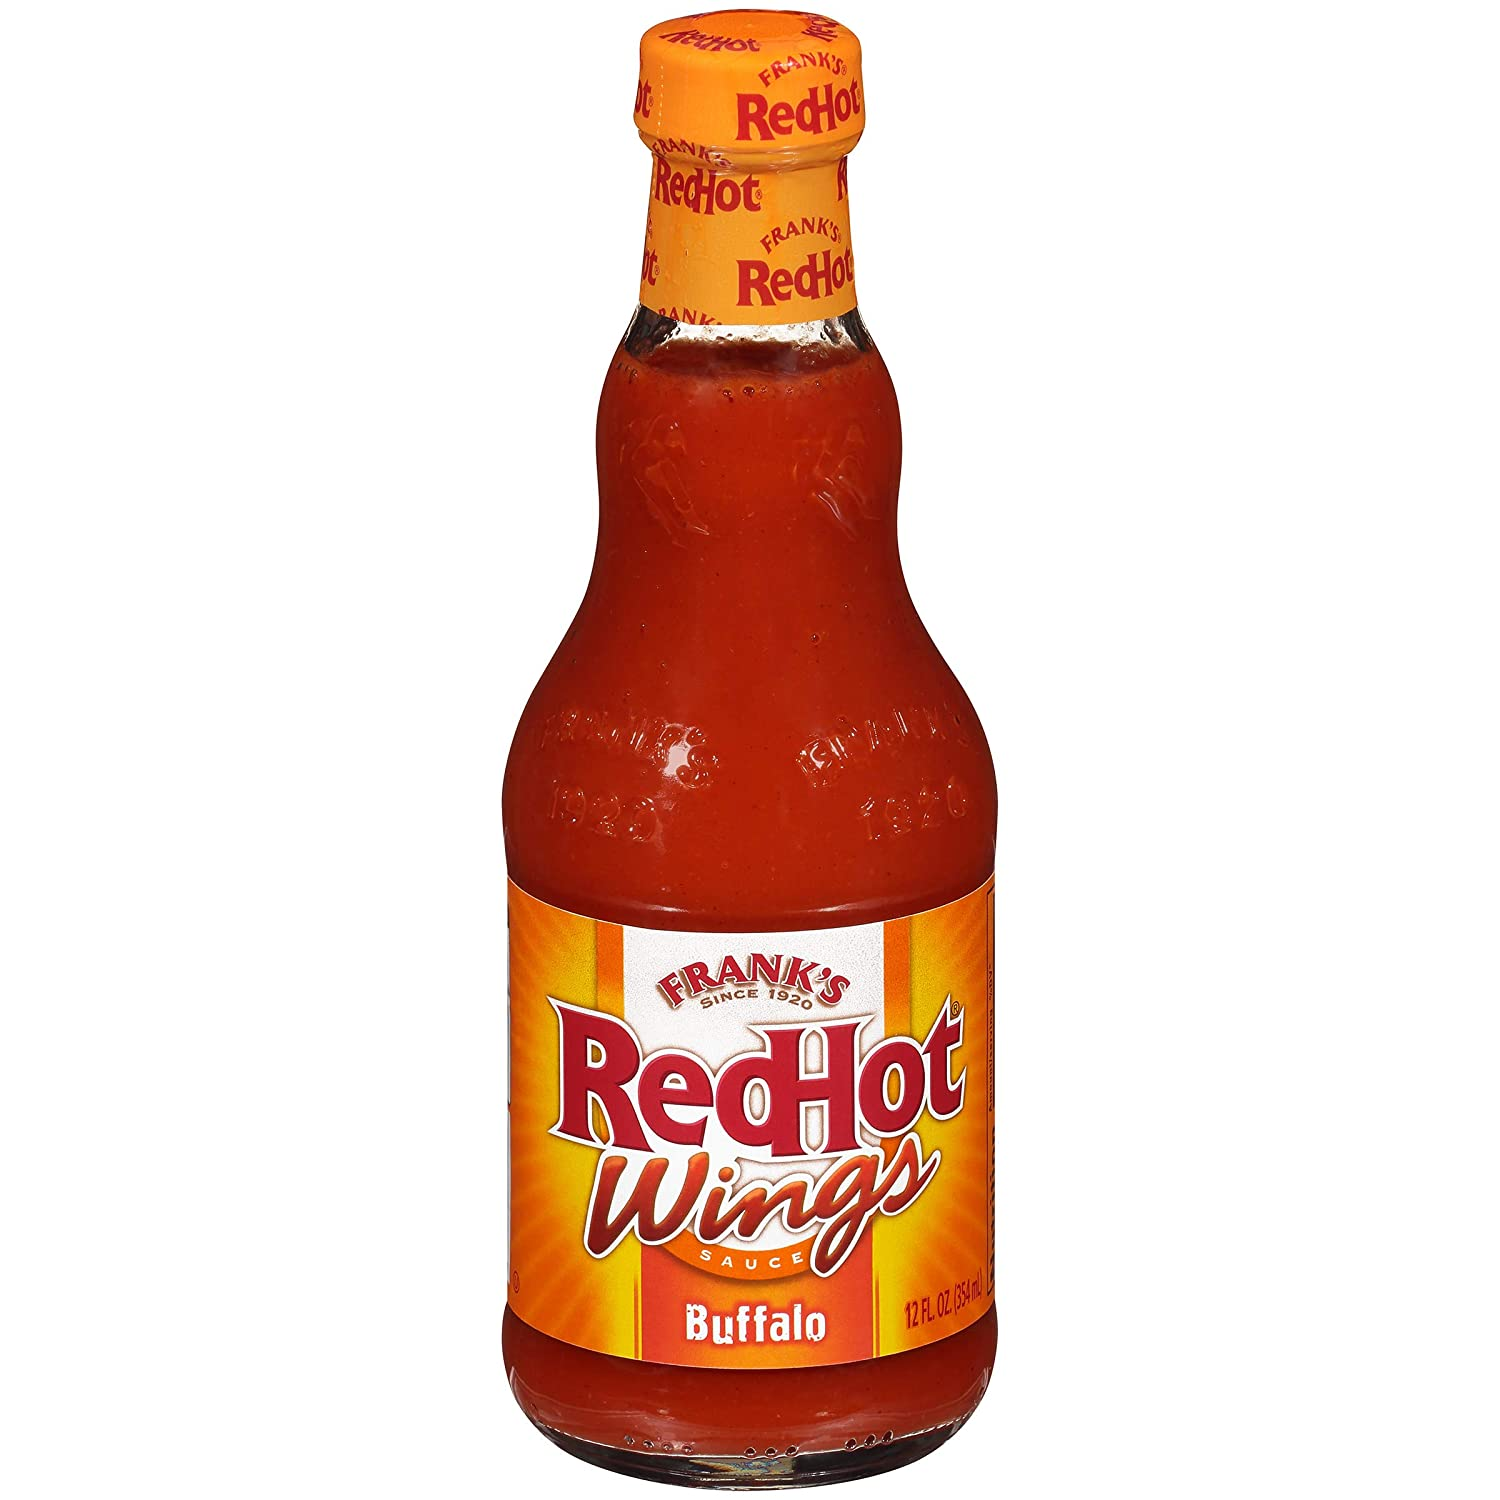 Frank's Max 62% OFF RedHot Buffalo Wings 12 Super special price oz fl Sauce